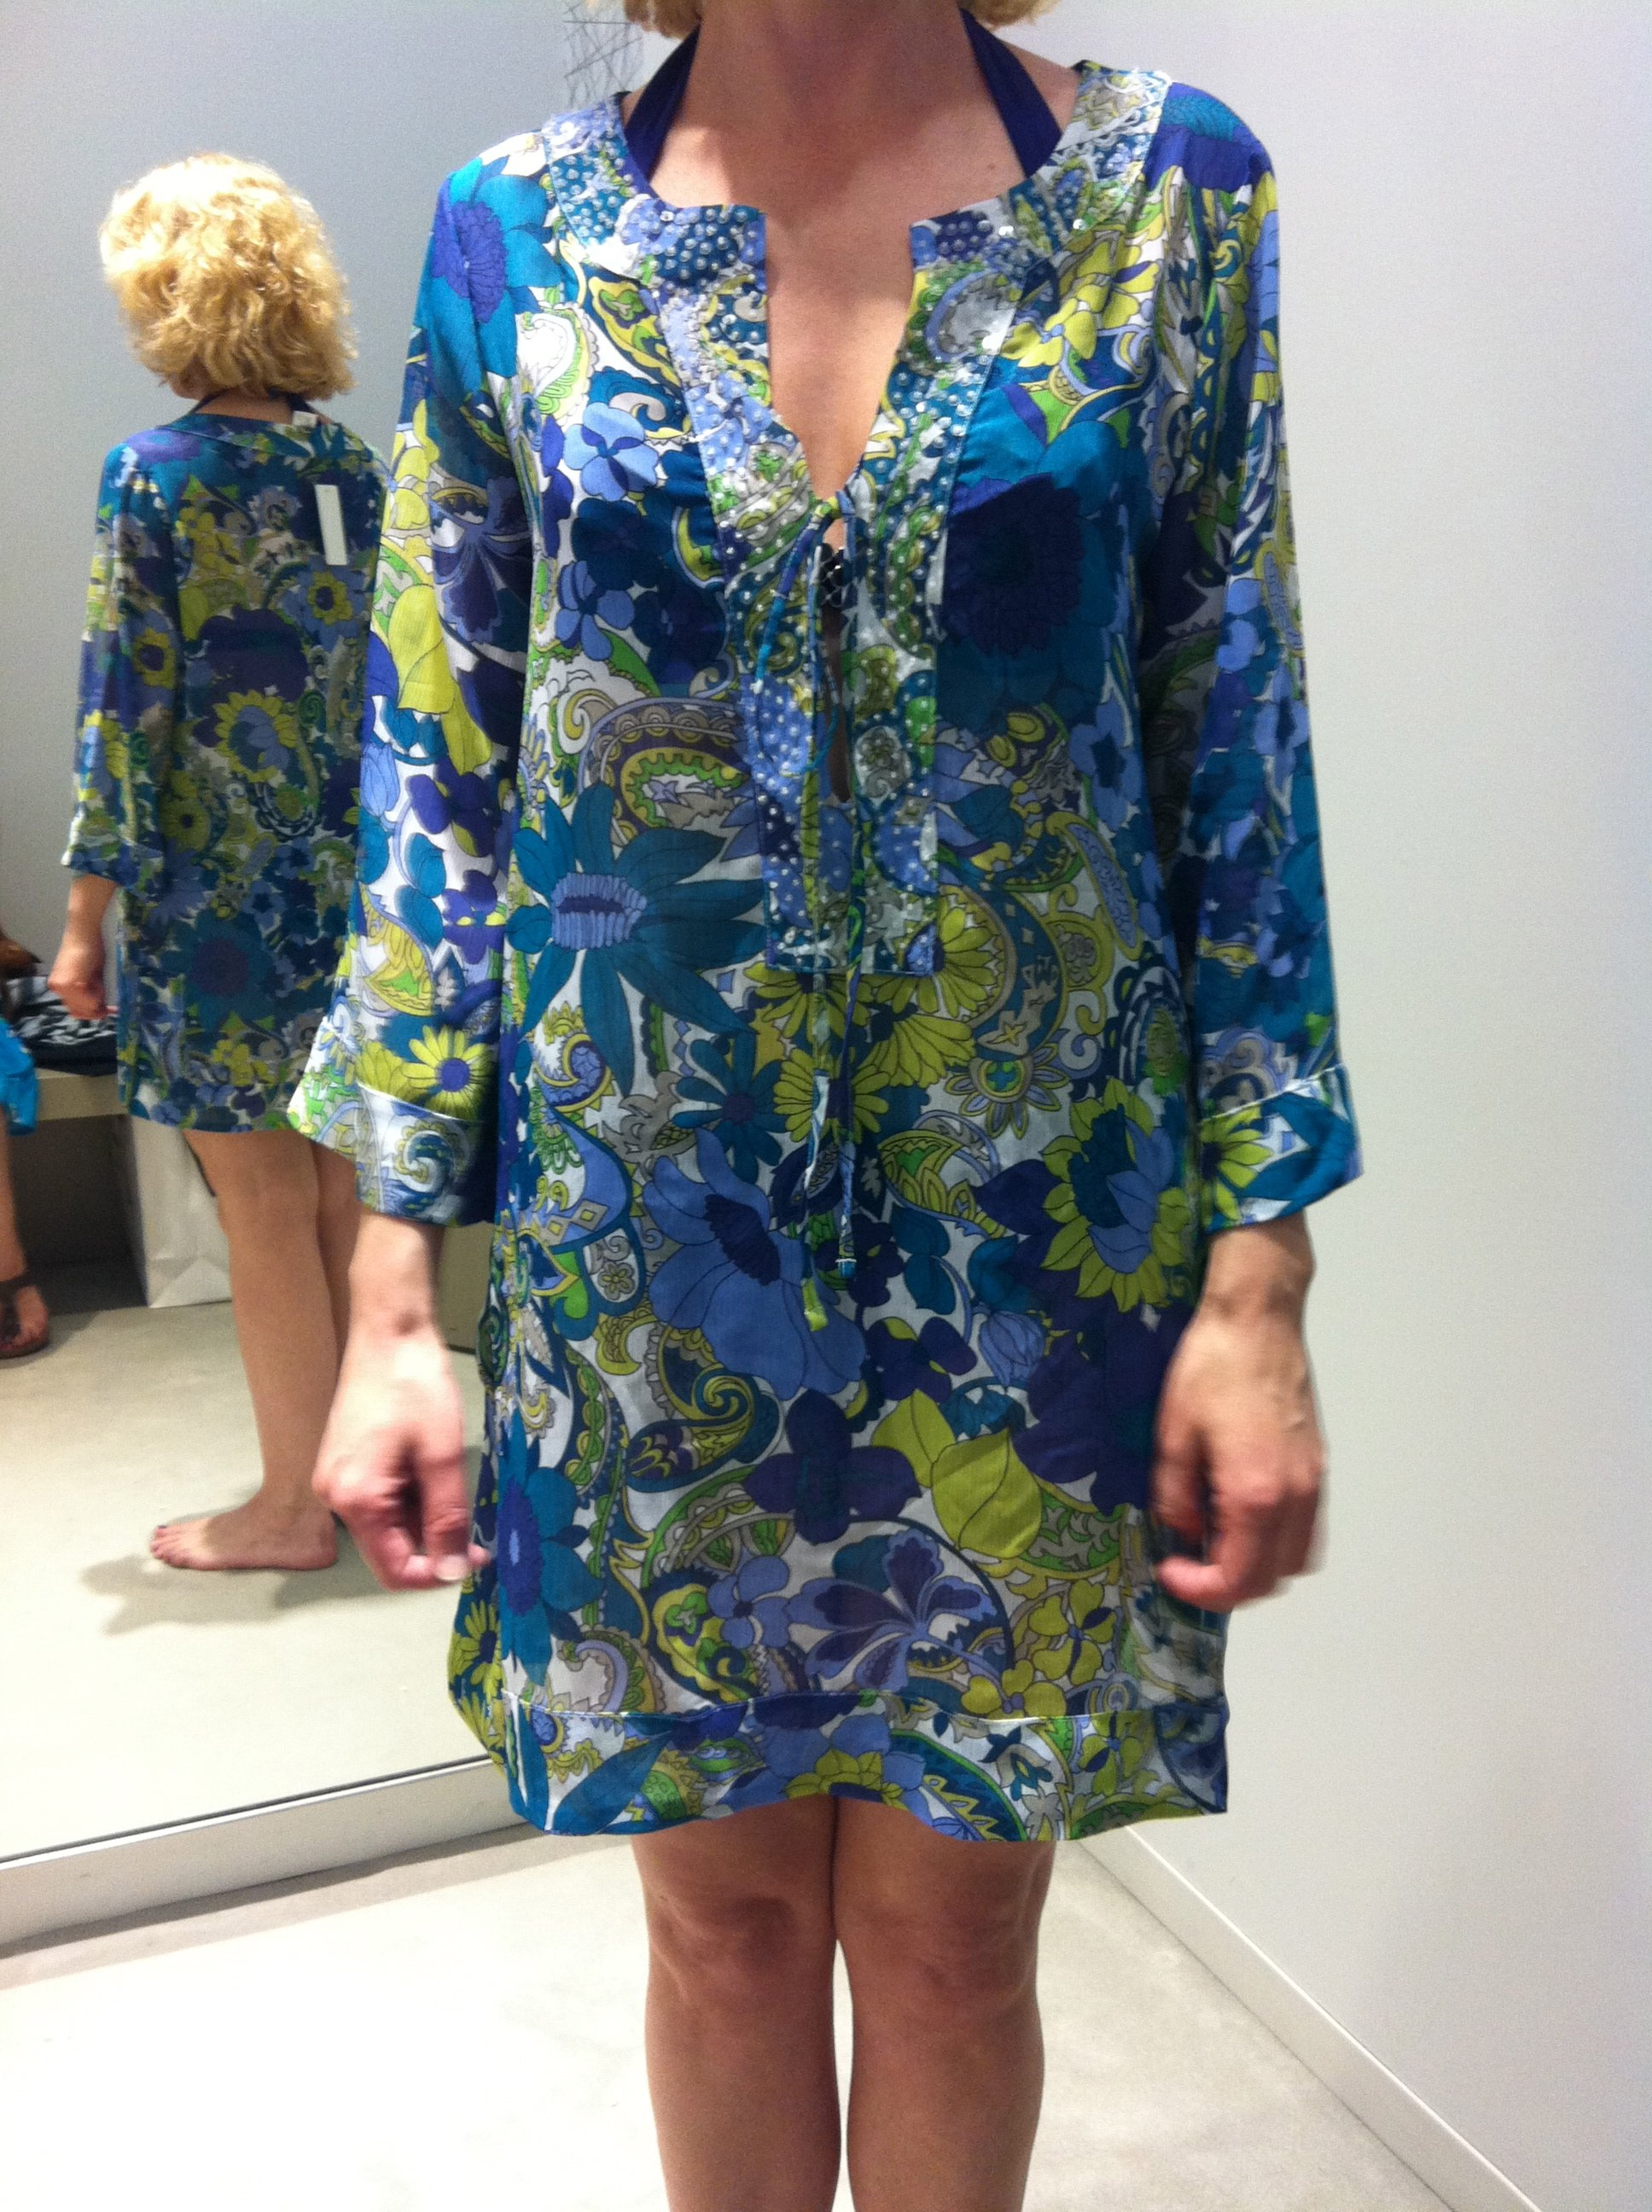 Behind the Scenes: Ms. Chic's Favorite Bathing Suit Coverup